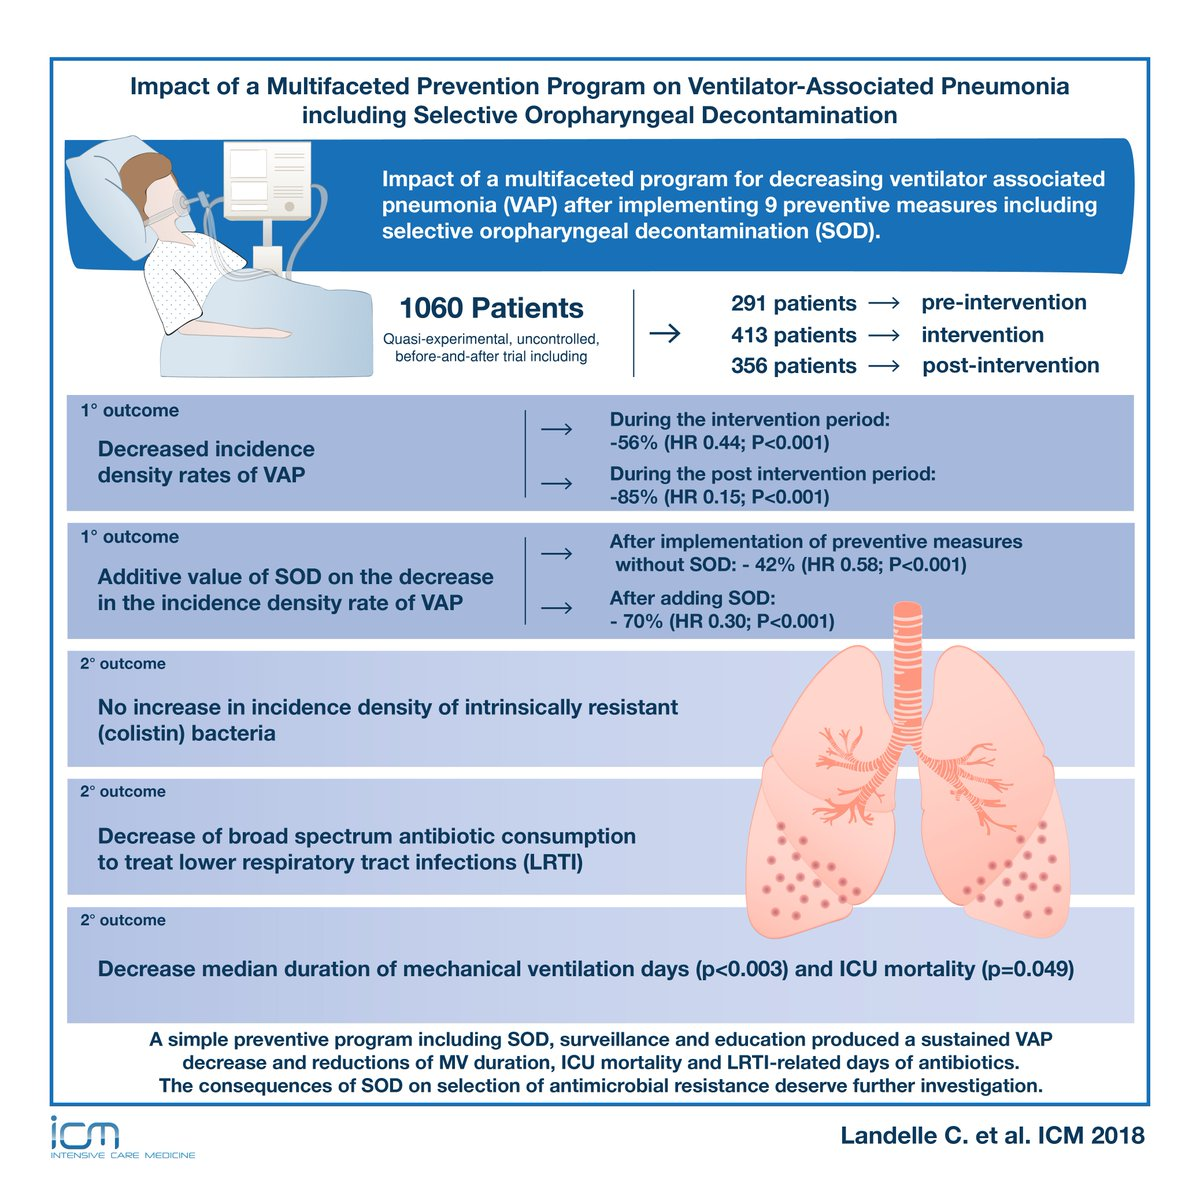 hight resolution of  pneumonia prevention programs read full text article open access https goo gl phjnkz esicm dr cit clinmedjournalspic twitter com e3pacty9j0